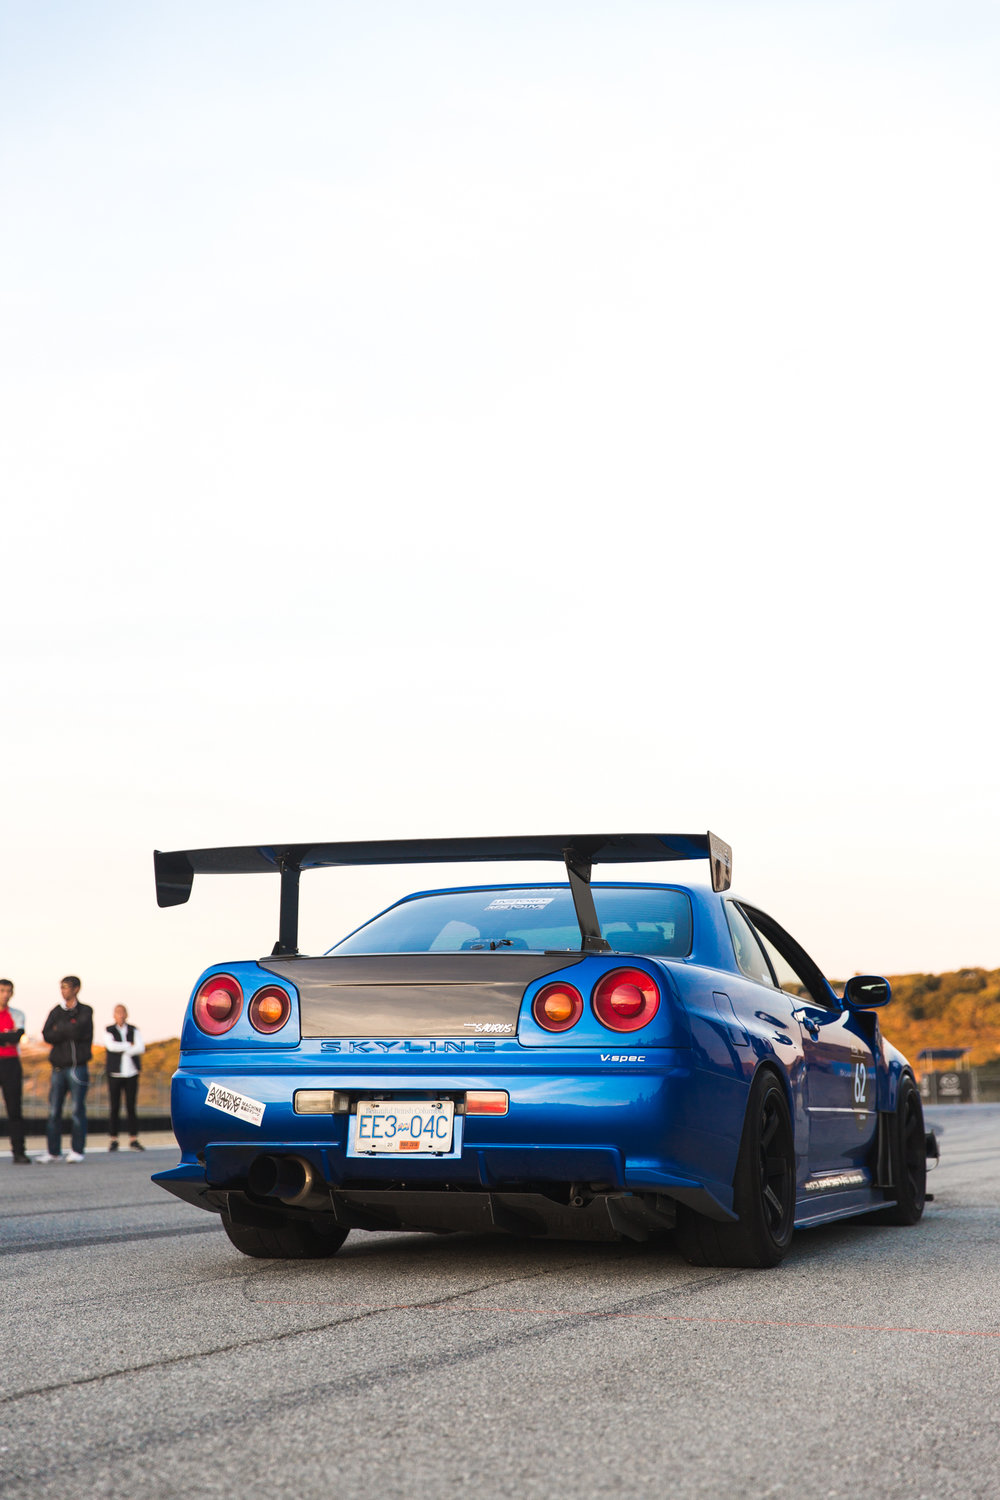 Stay_Driven_Rs_Day-131.jpg